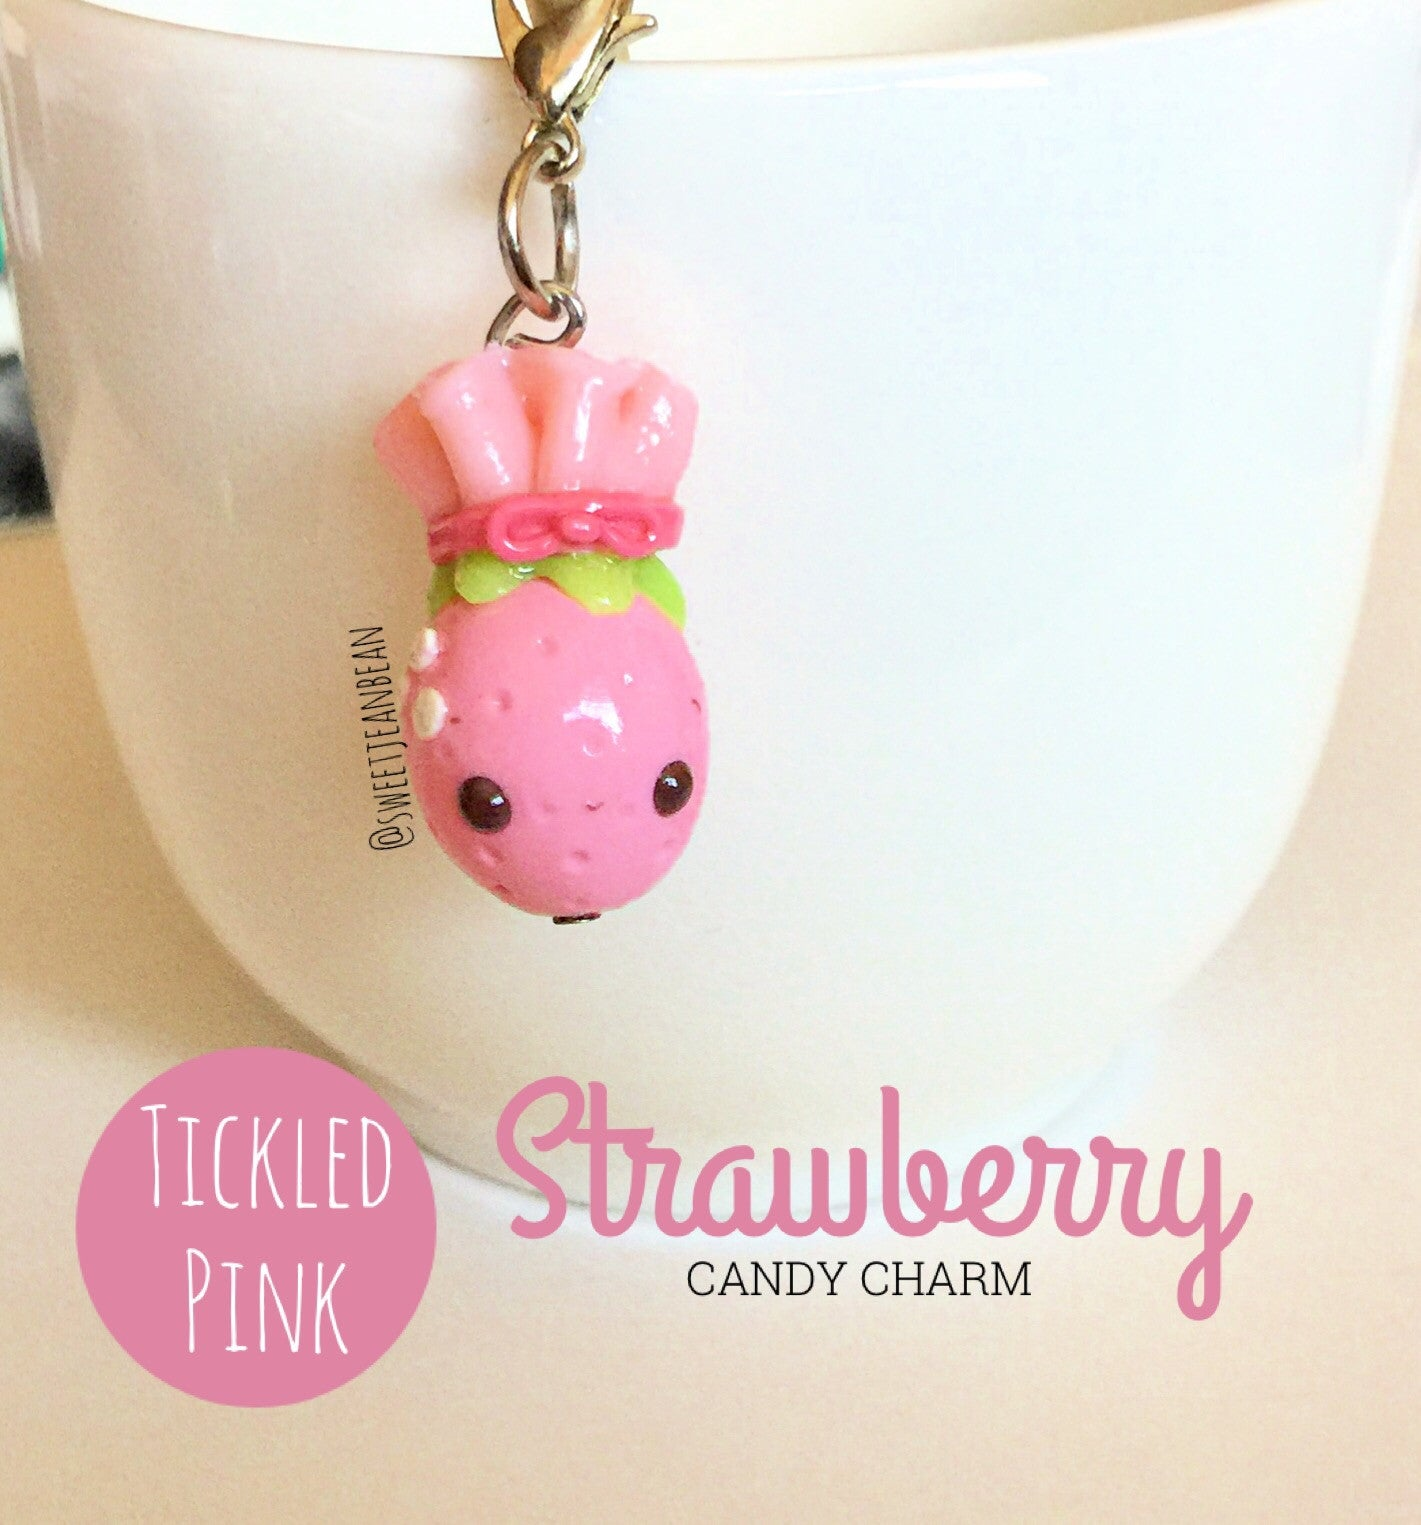 Tickled Pink Strawberry Candy Charm